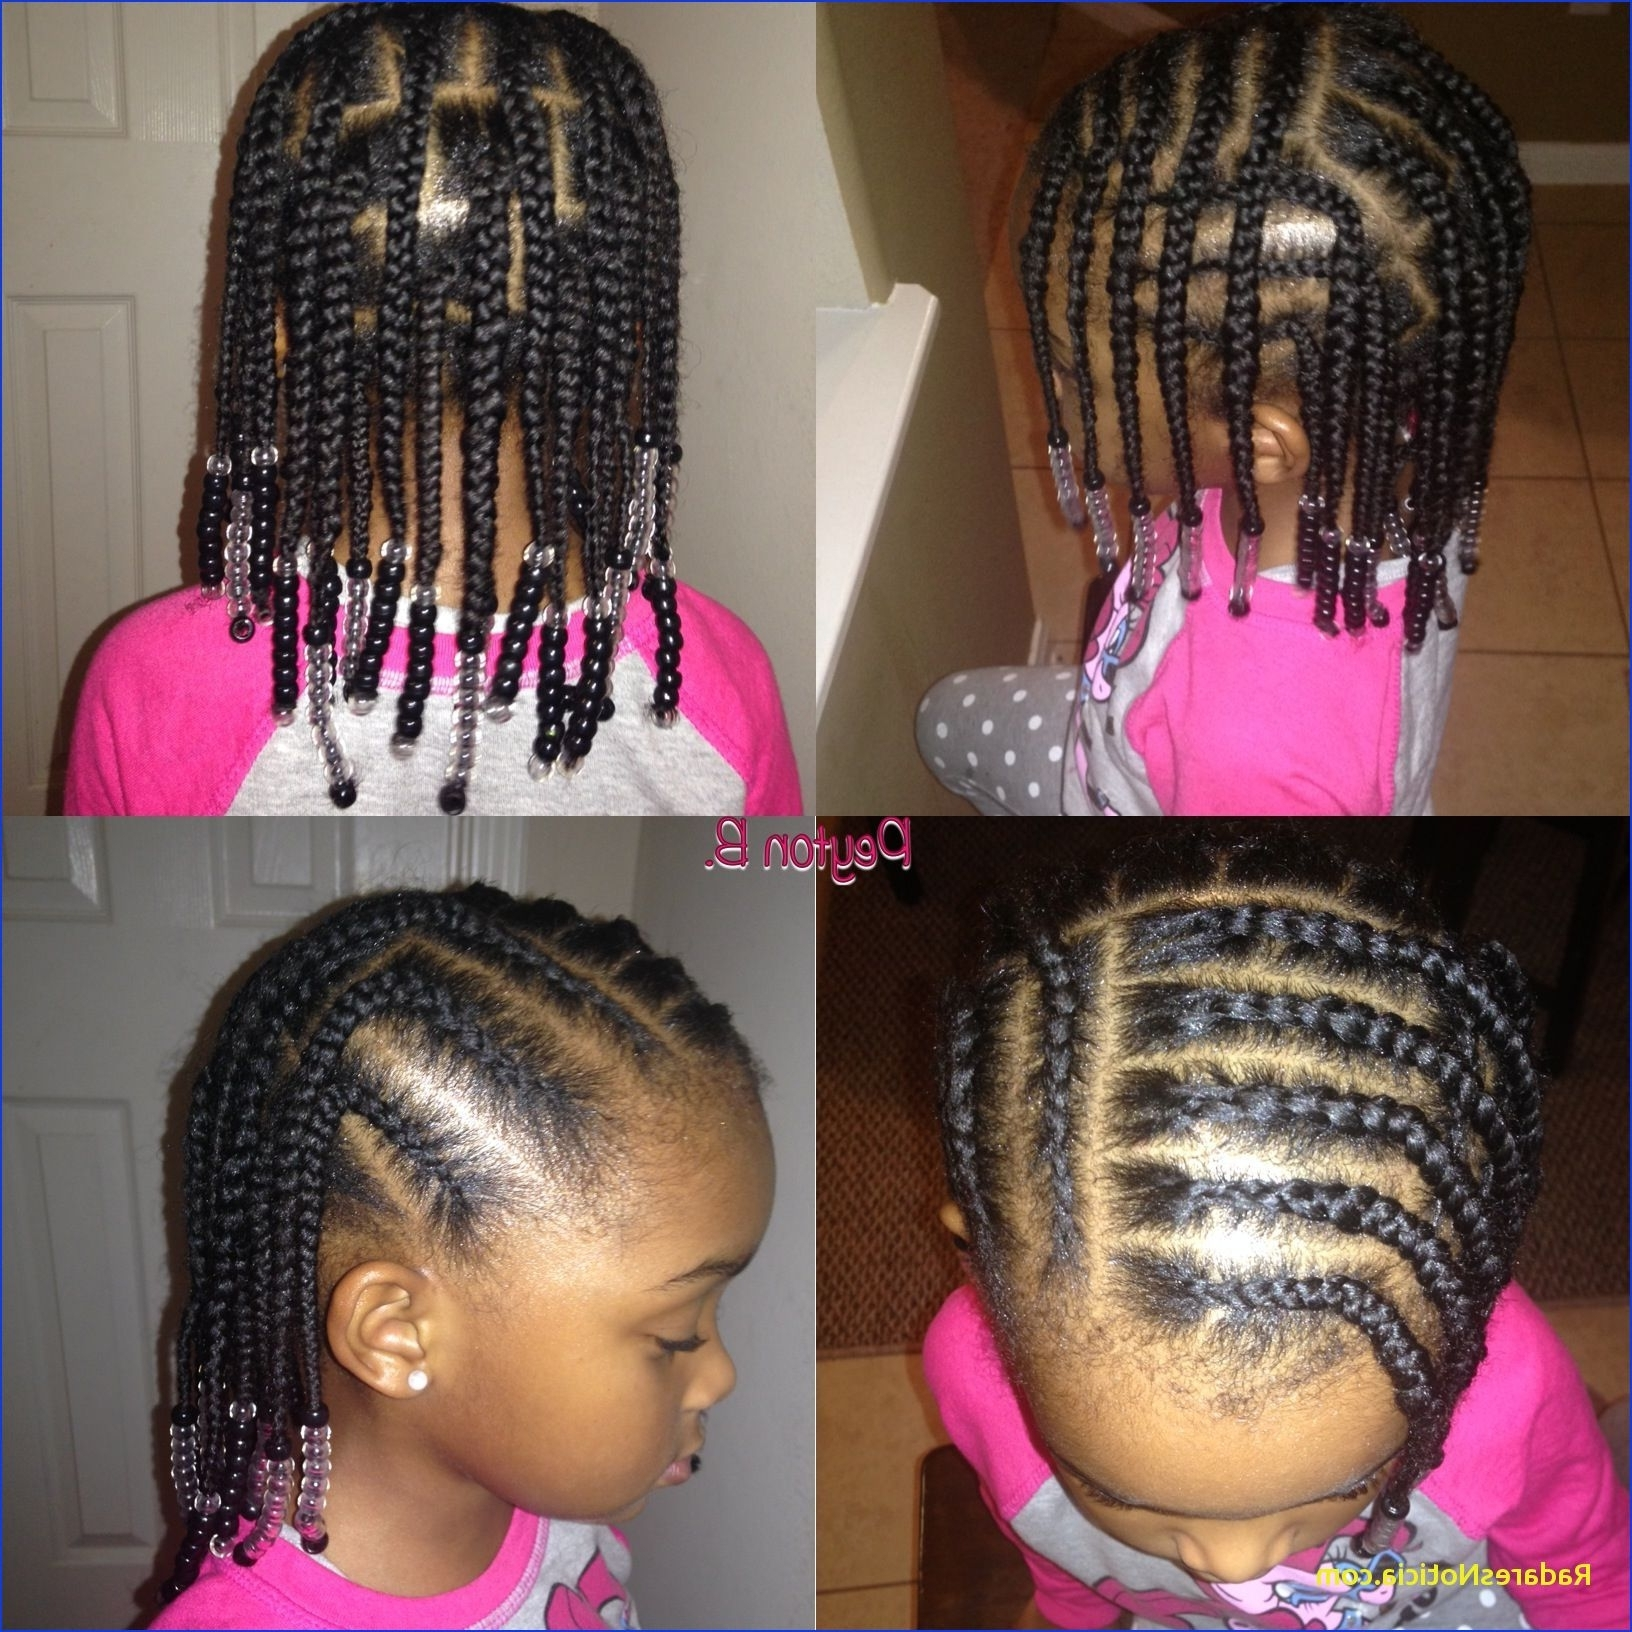 Best And Newest Cornrows Hairstyles For Toddlers Throughout 7 Best Easy Braid Hairstyles For Kids (View 2 of 15)